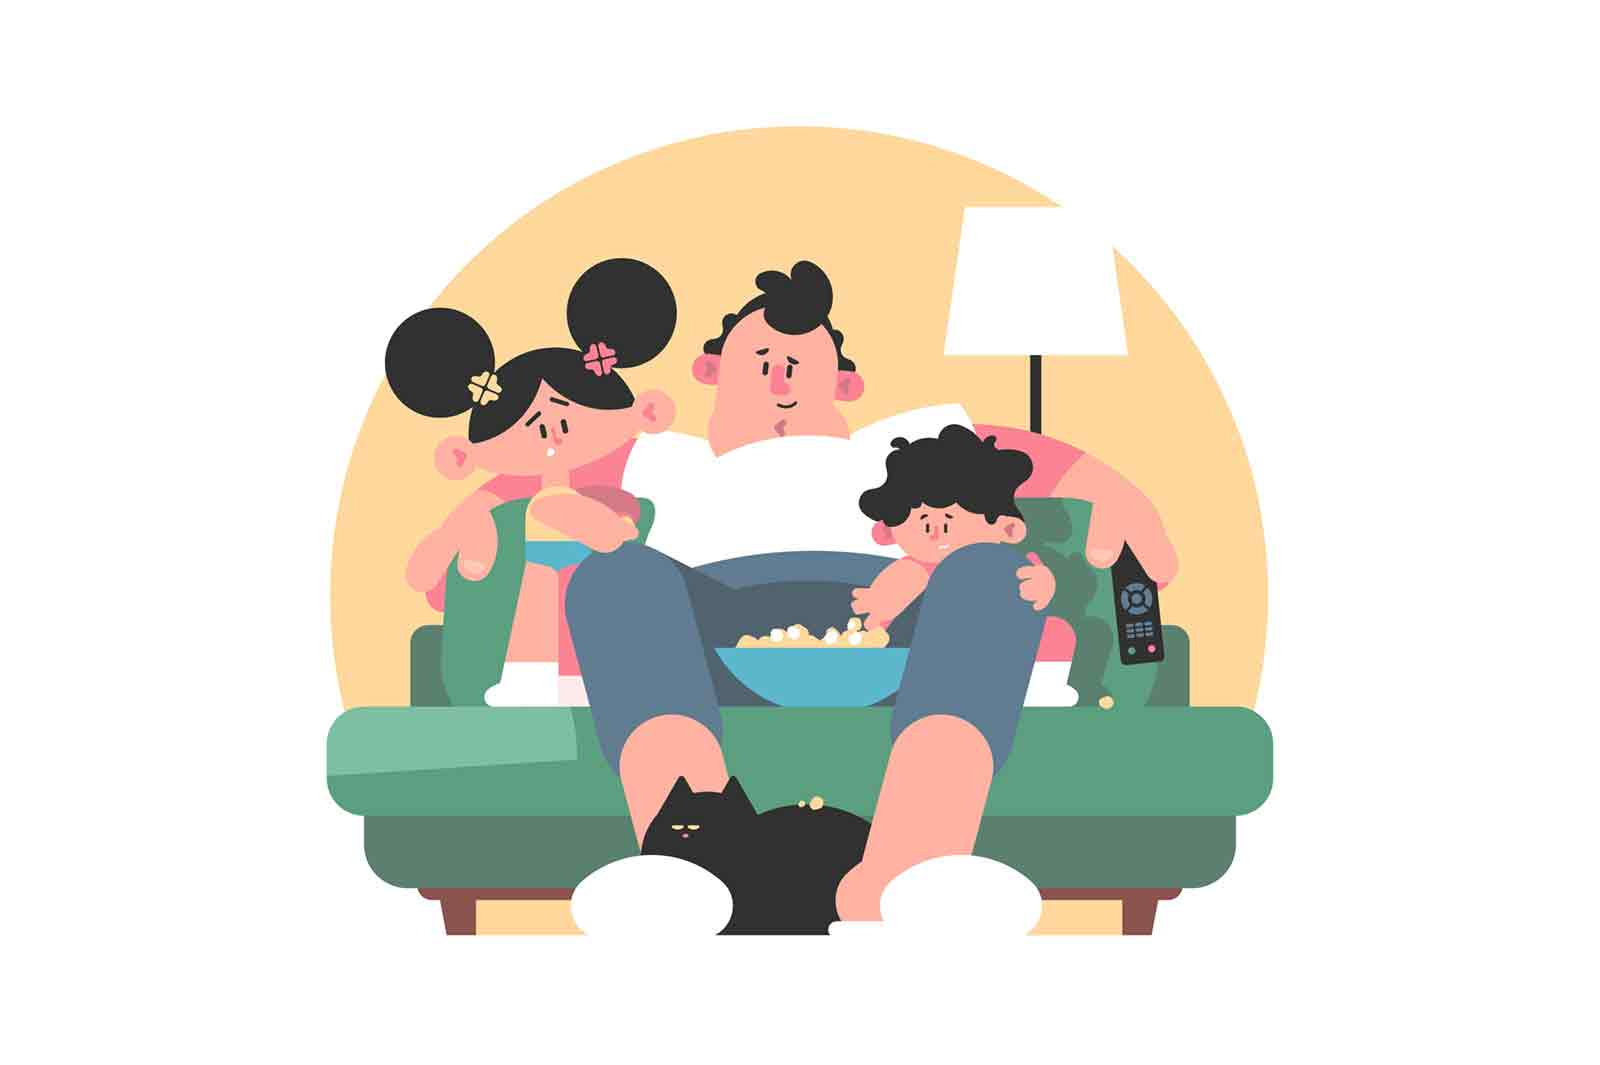 Family watching tv together vector illustration. Smiling father with kids resting on sofa flat style. Popcorn and cozy living room interior. Family time concept. Isolated on white background